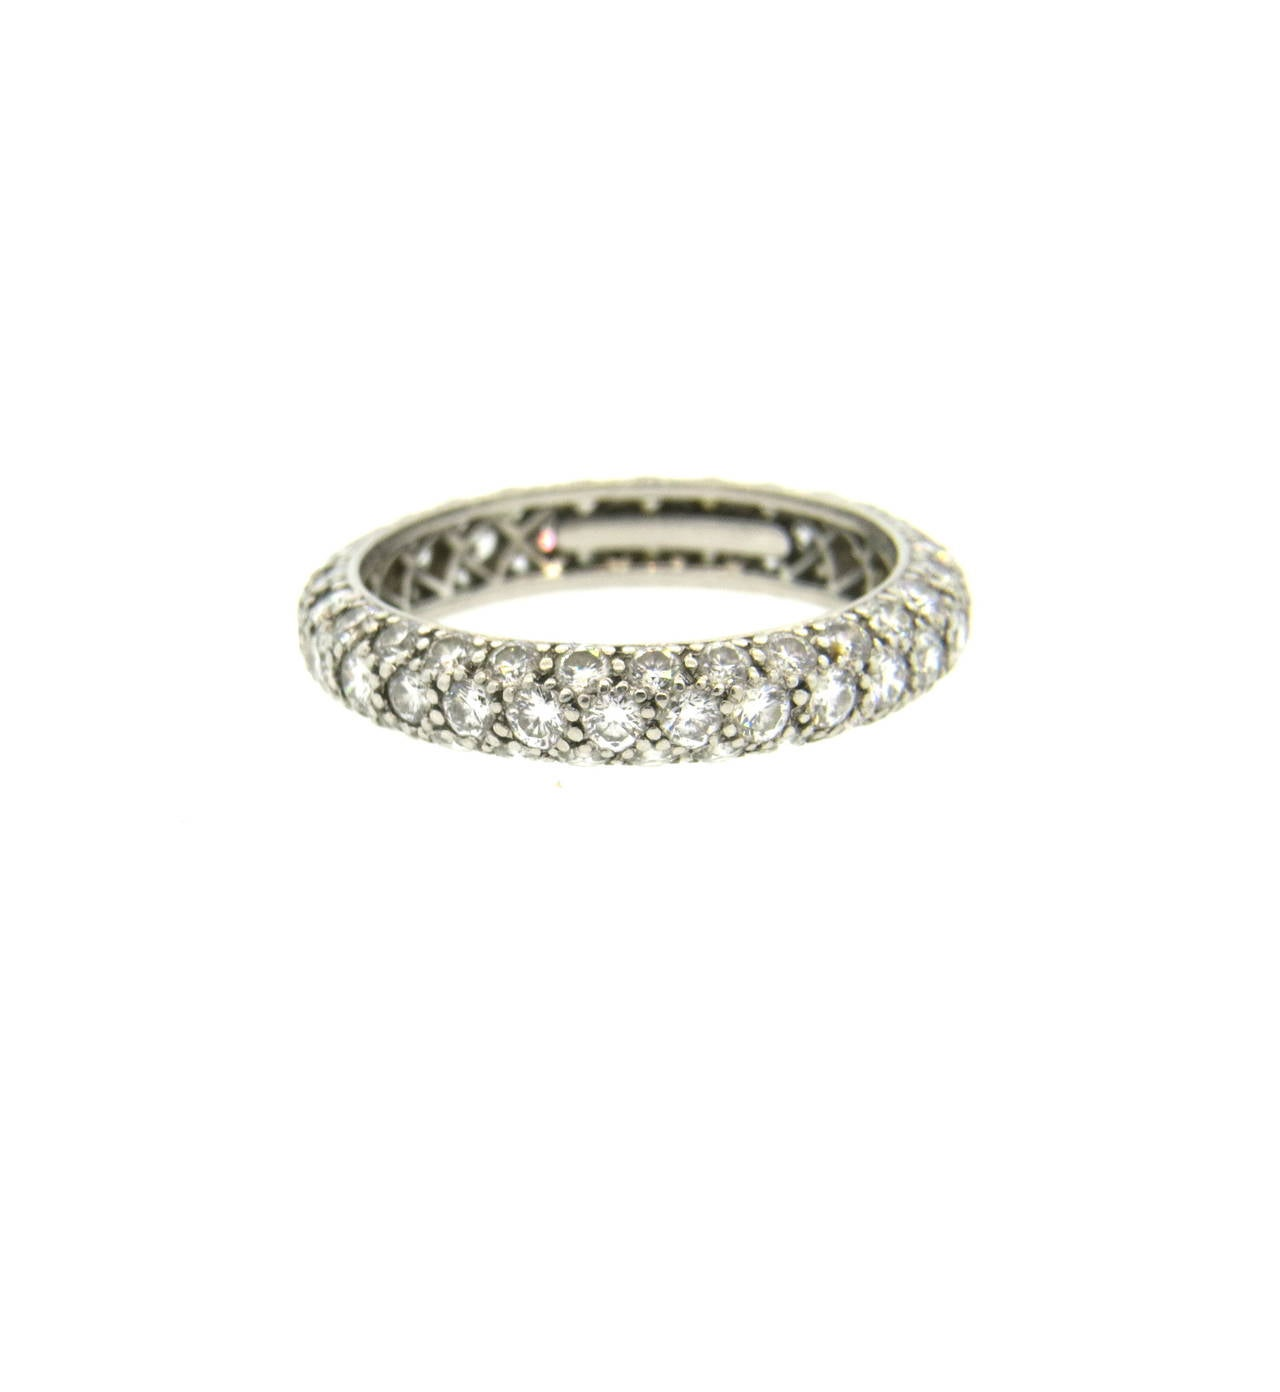 id j eternity wedding bands Etoile Platinum Diamond Eternity Wedding Band Ring 2